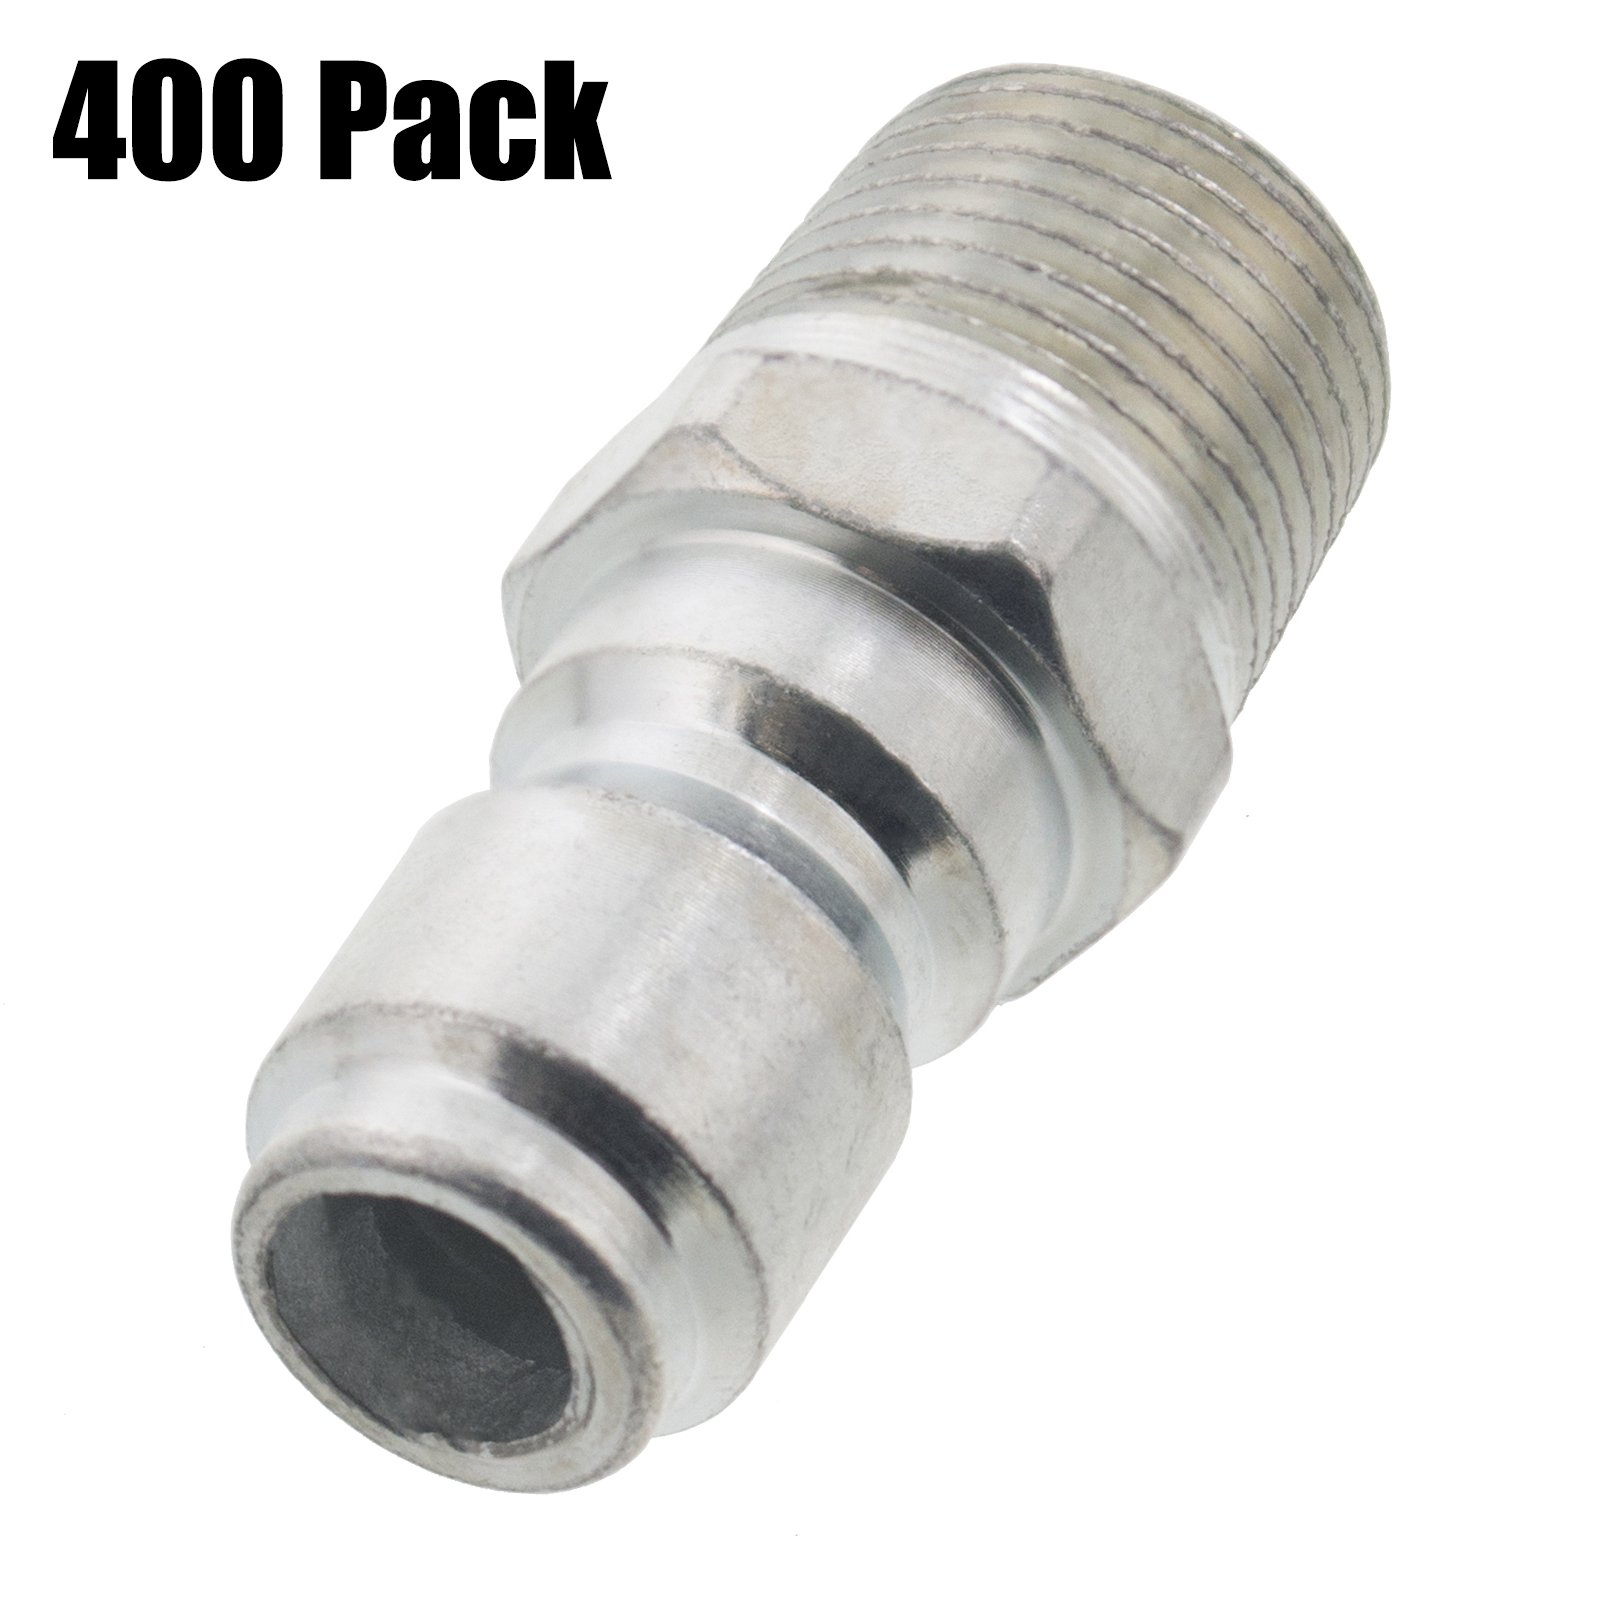 Erie Tools 400 Pressure Washer 3/8in. Male NPT to Quick Connect Plug Zinc Plated Coupler High Temp 4000 PSI 10.5 GPM